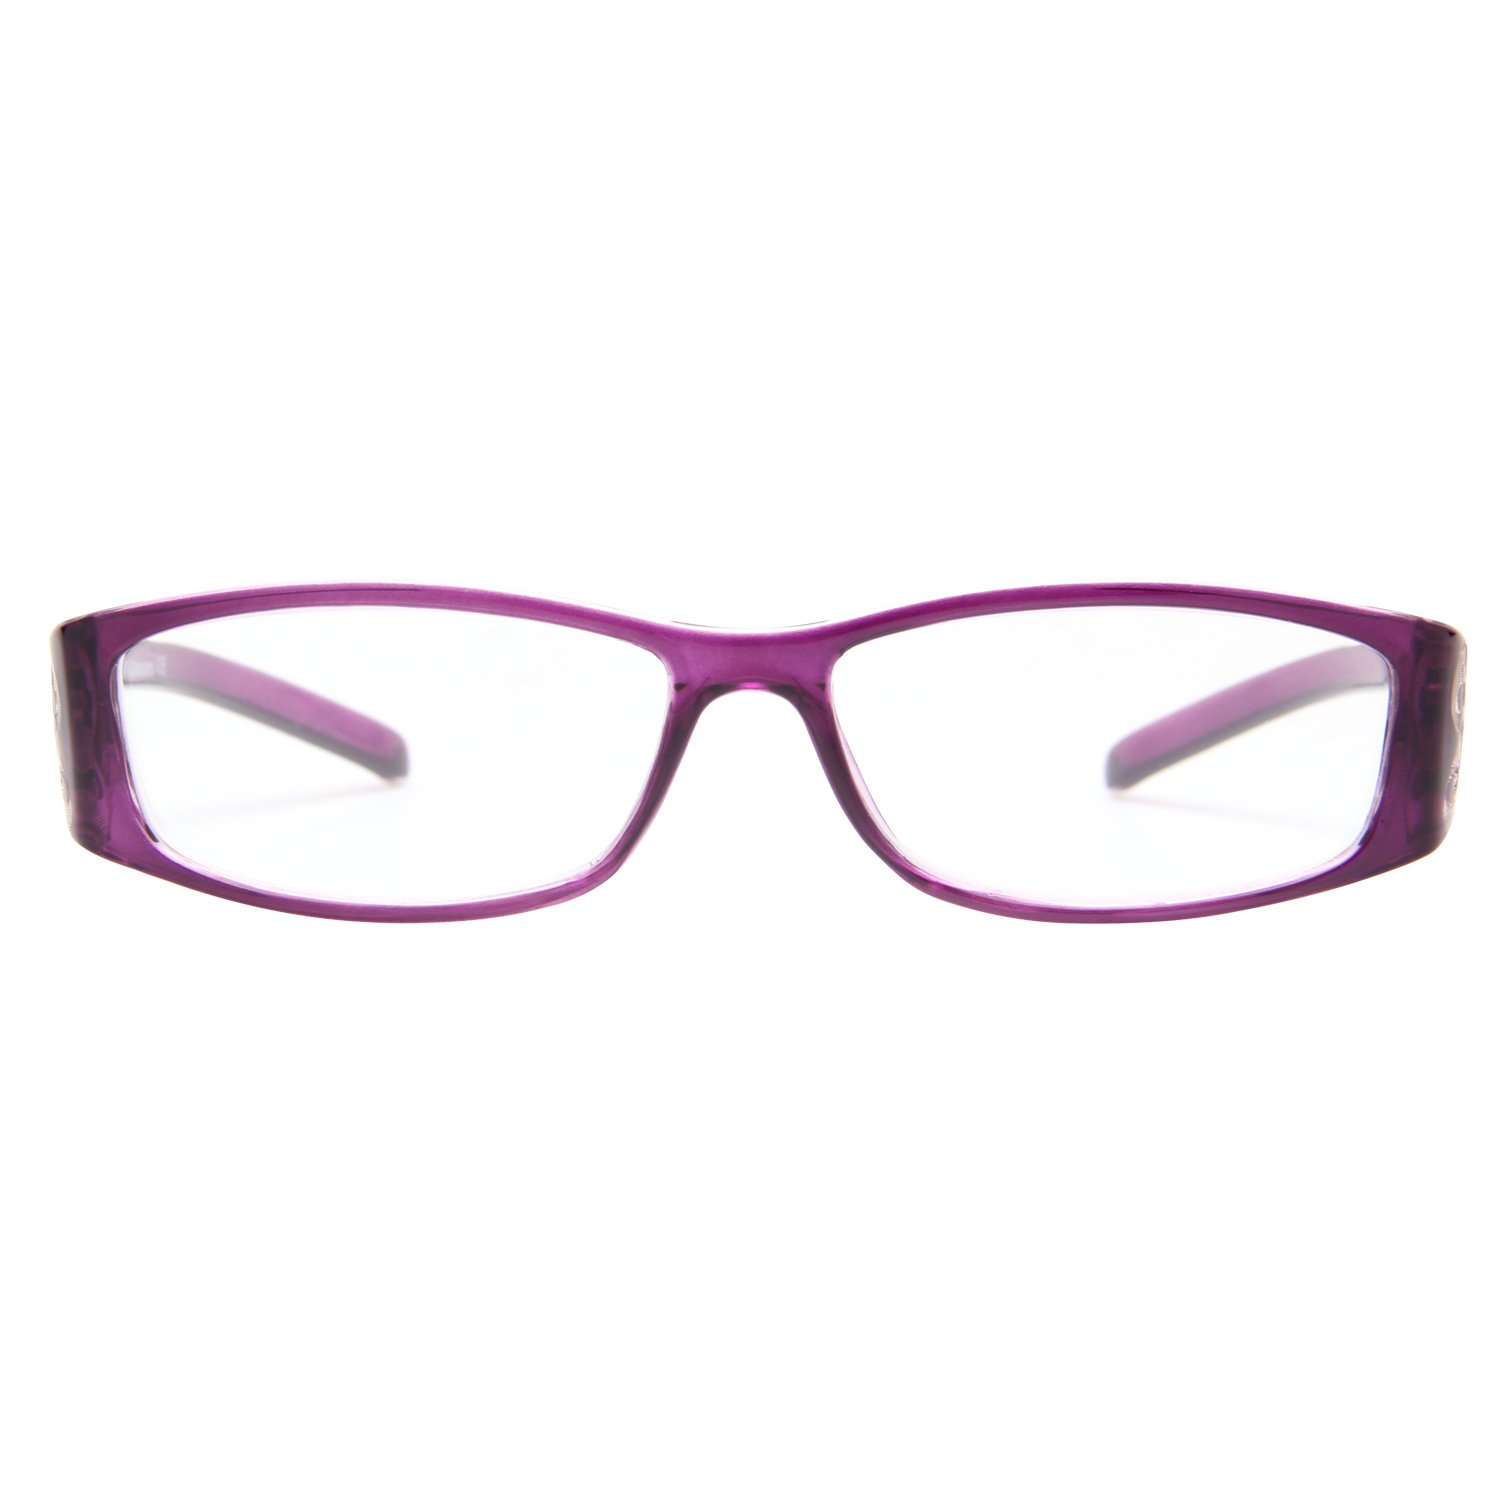 96e0ac253e72 Amazon.com  LianSan 3 Pack Stylish Ladies Readers Cute Reading Glasses for Women  Pink Purple Red +3.75 Magnification  Health   Personal Care